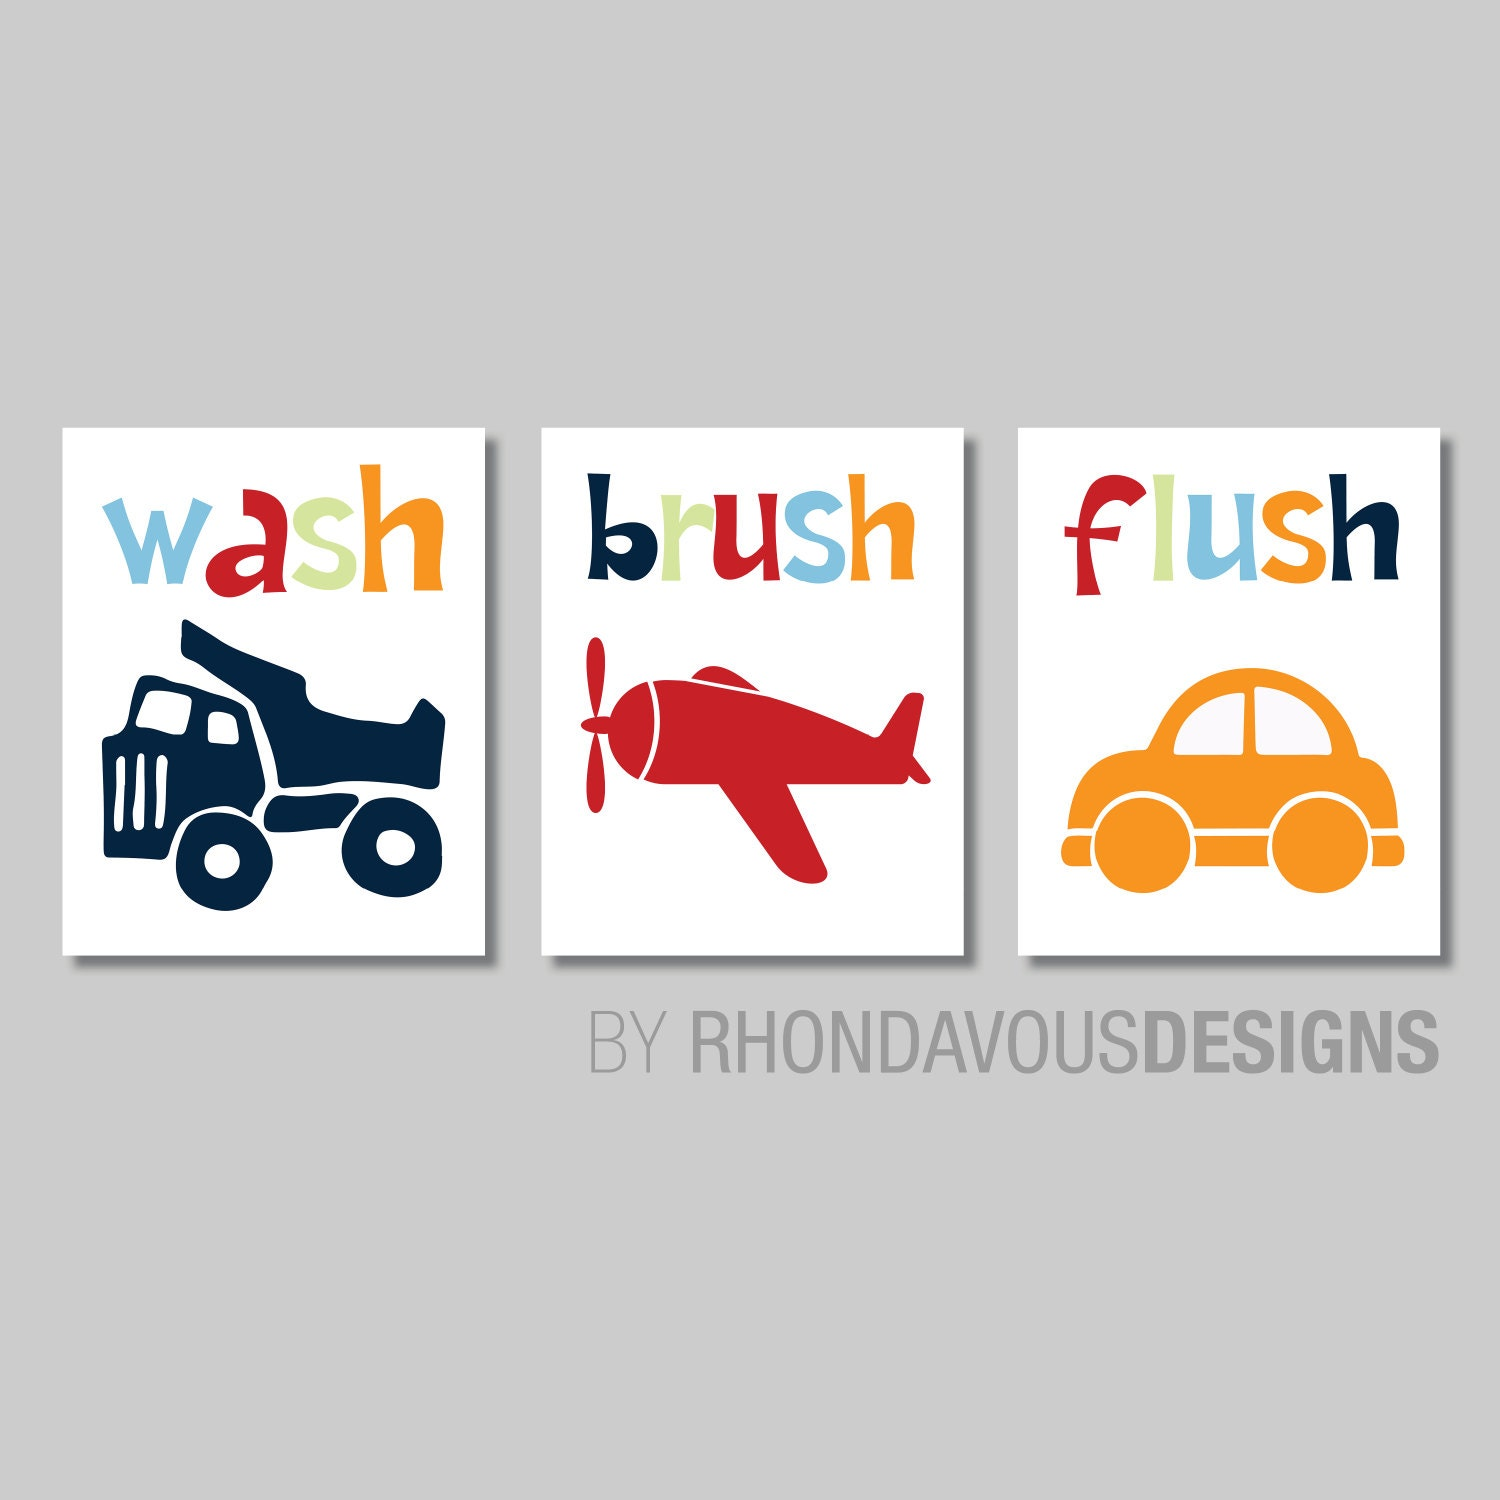 transportation bathroom art prints kids bathroom art kids bathroom decor kids bathroom wall art home decor wall bathroom art ns 809 - Prints For Kids